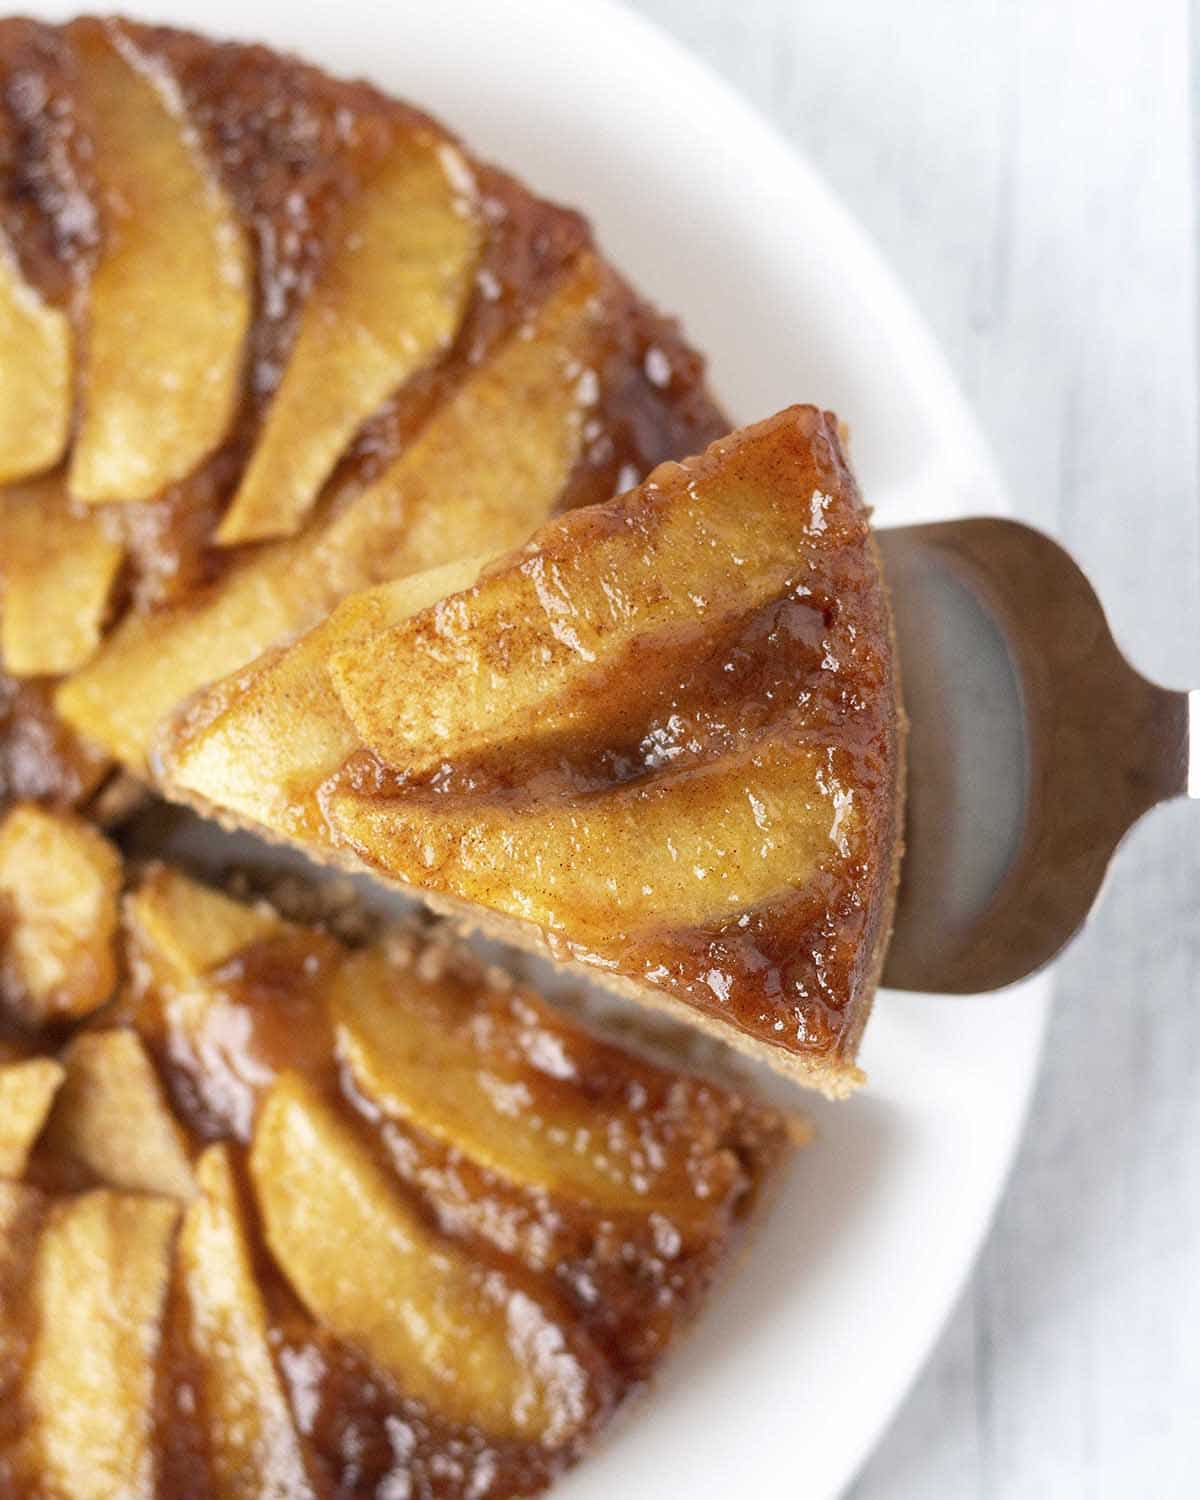 Overhead shot of a slice of vegan gluten-free apple upside down cake being held up over the cake with a serving spatula.